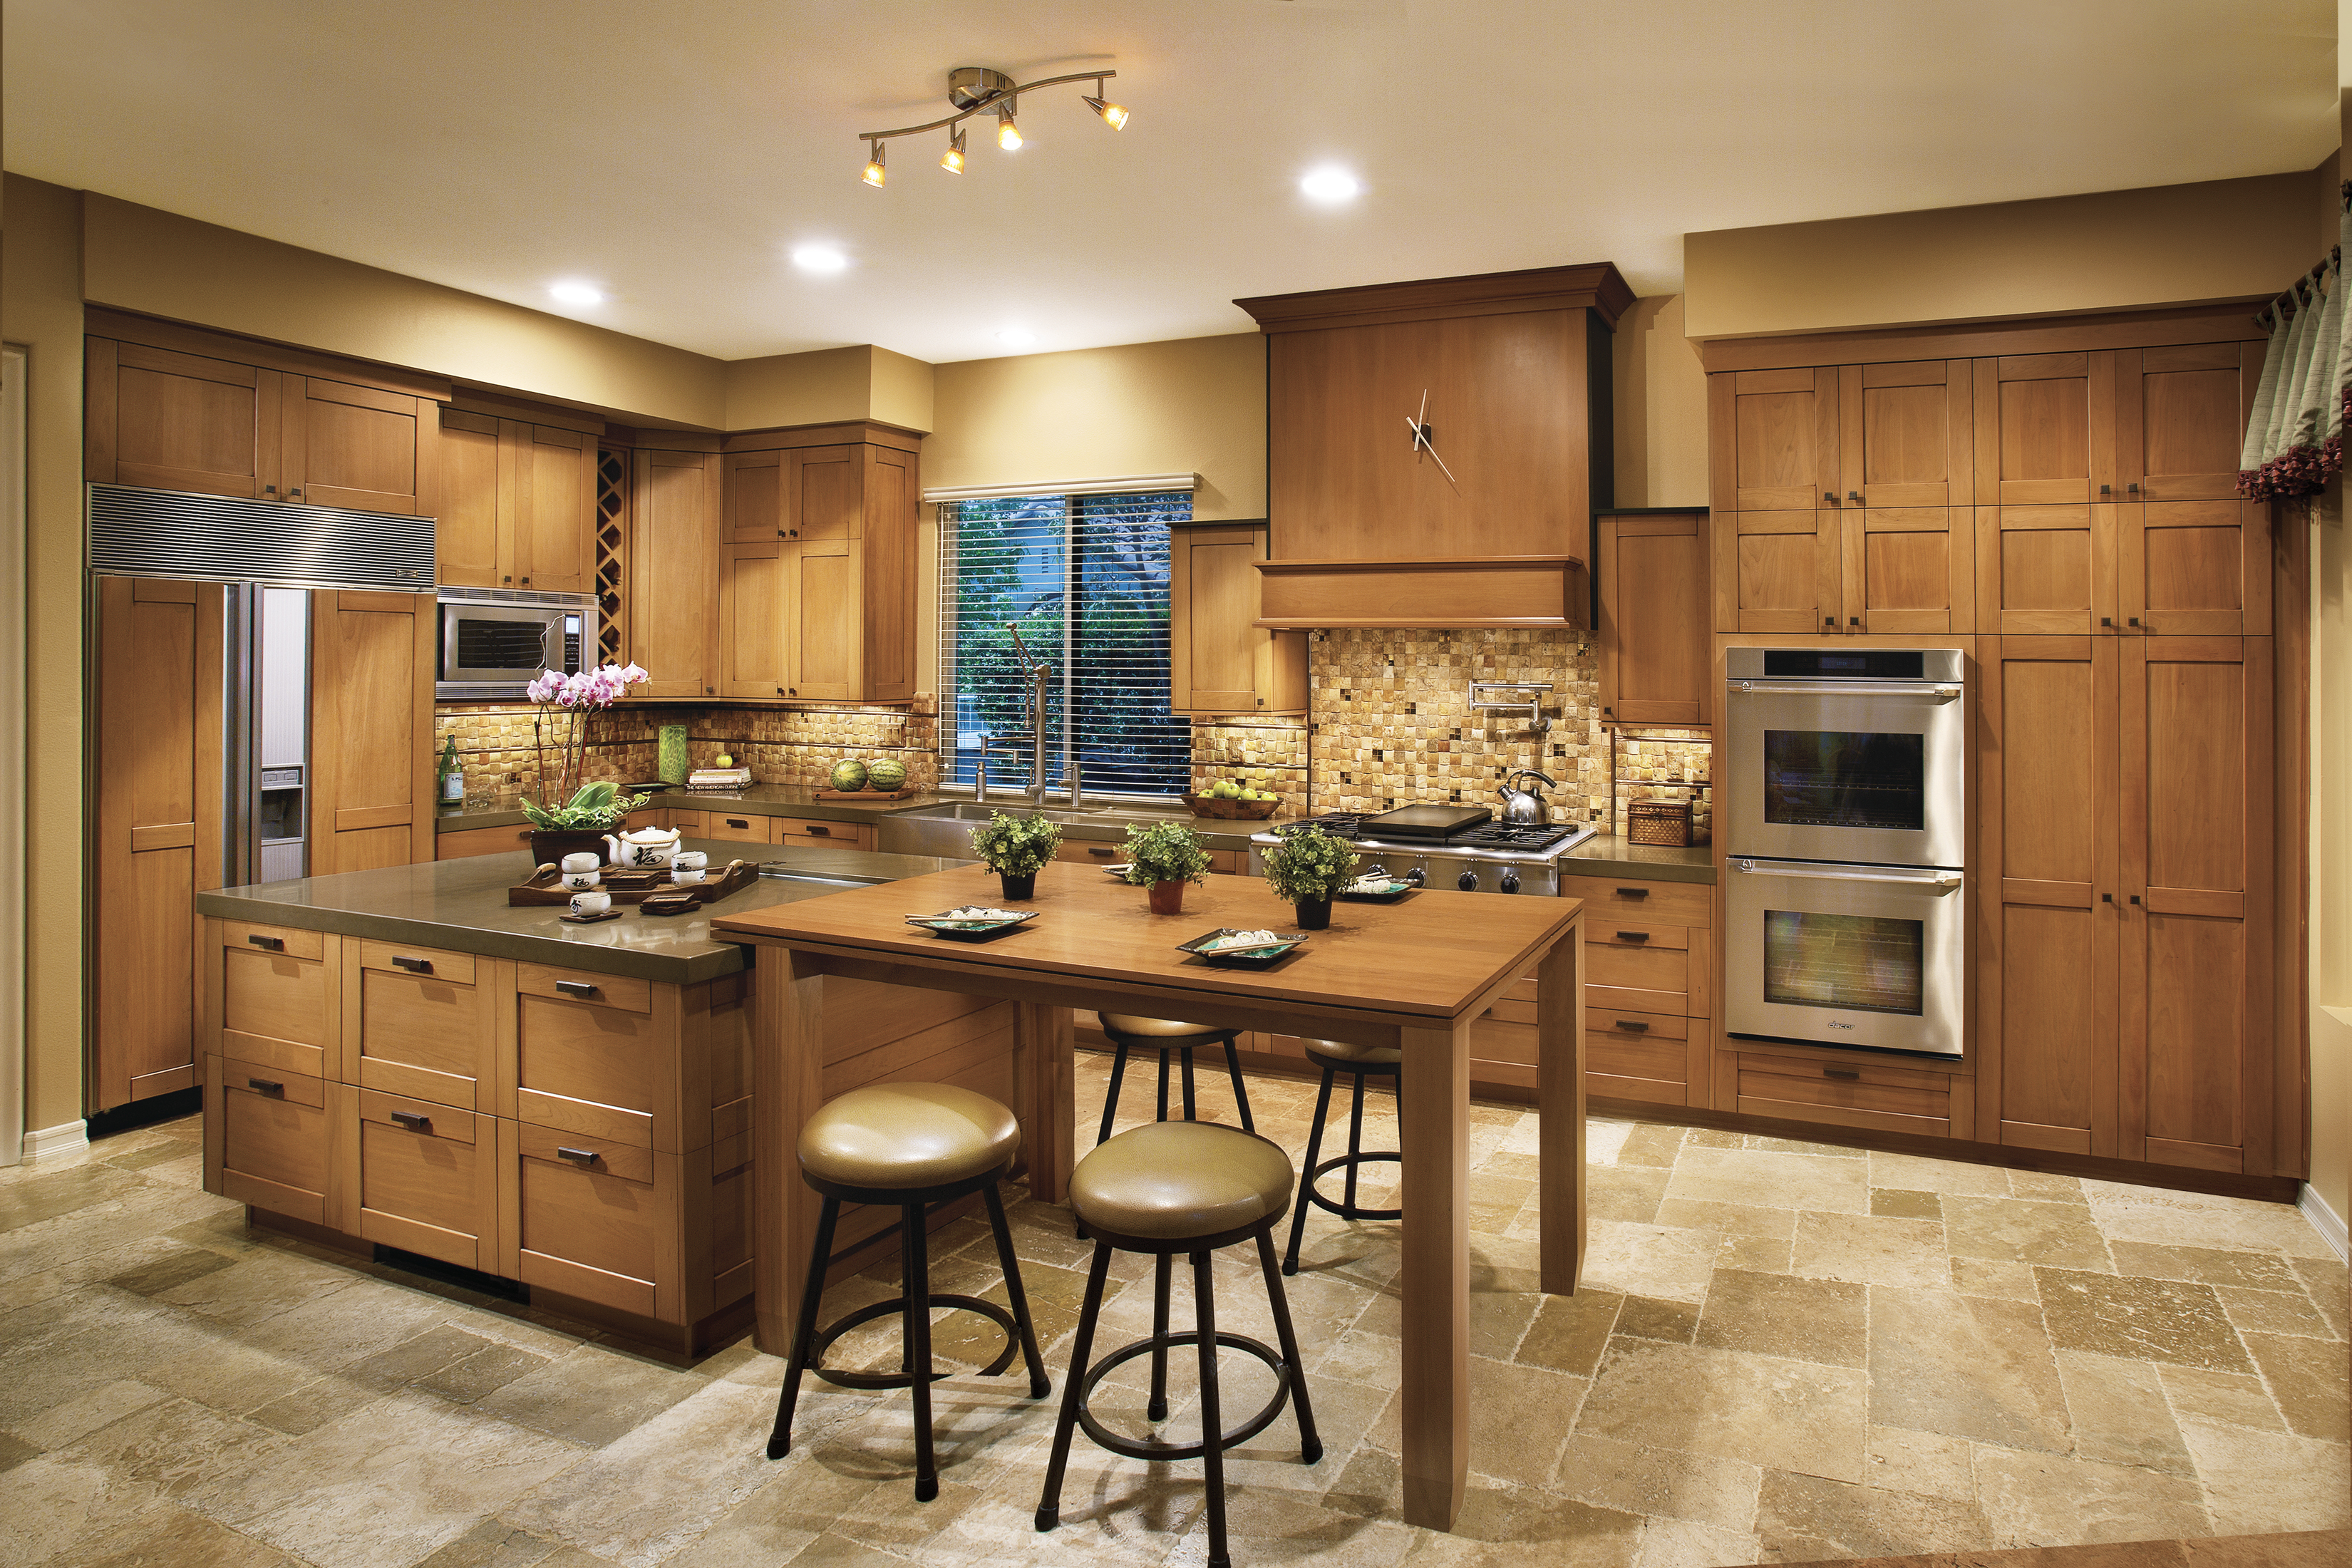 Maple Dorado Kitchen Cabinets